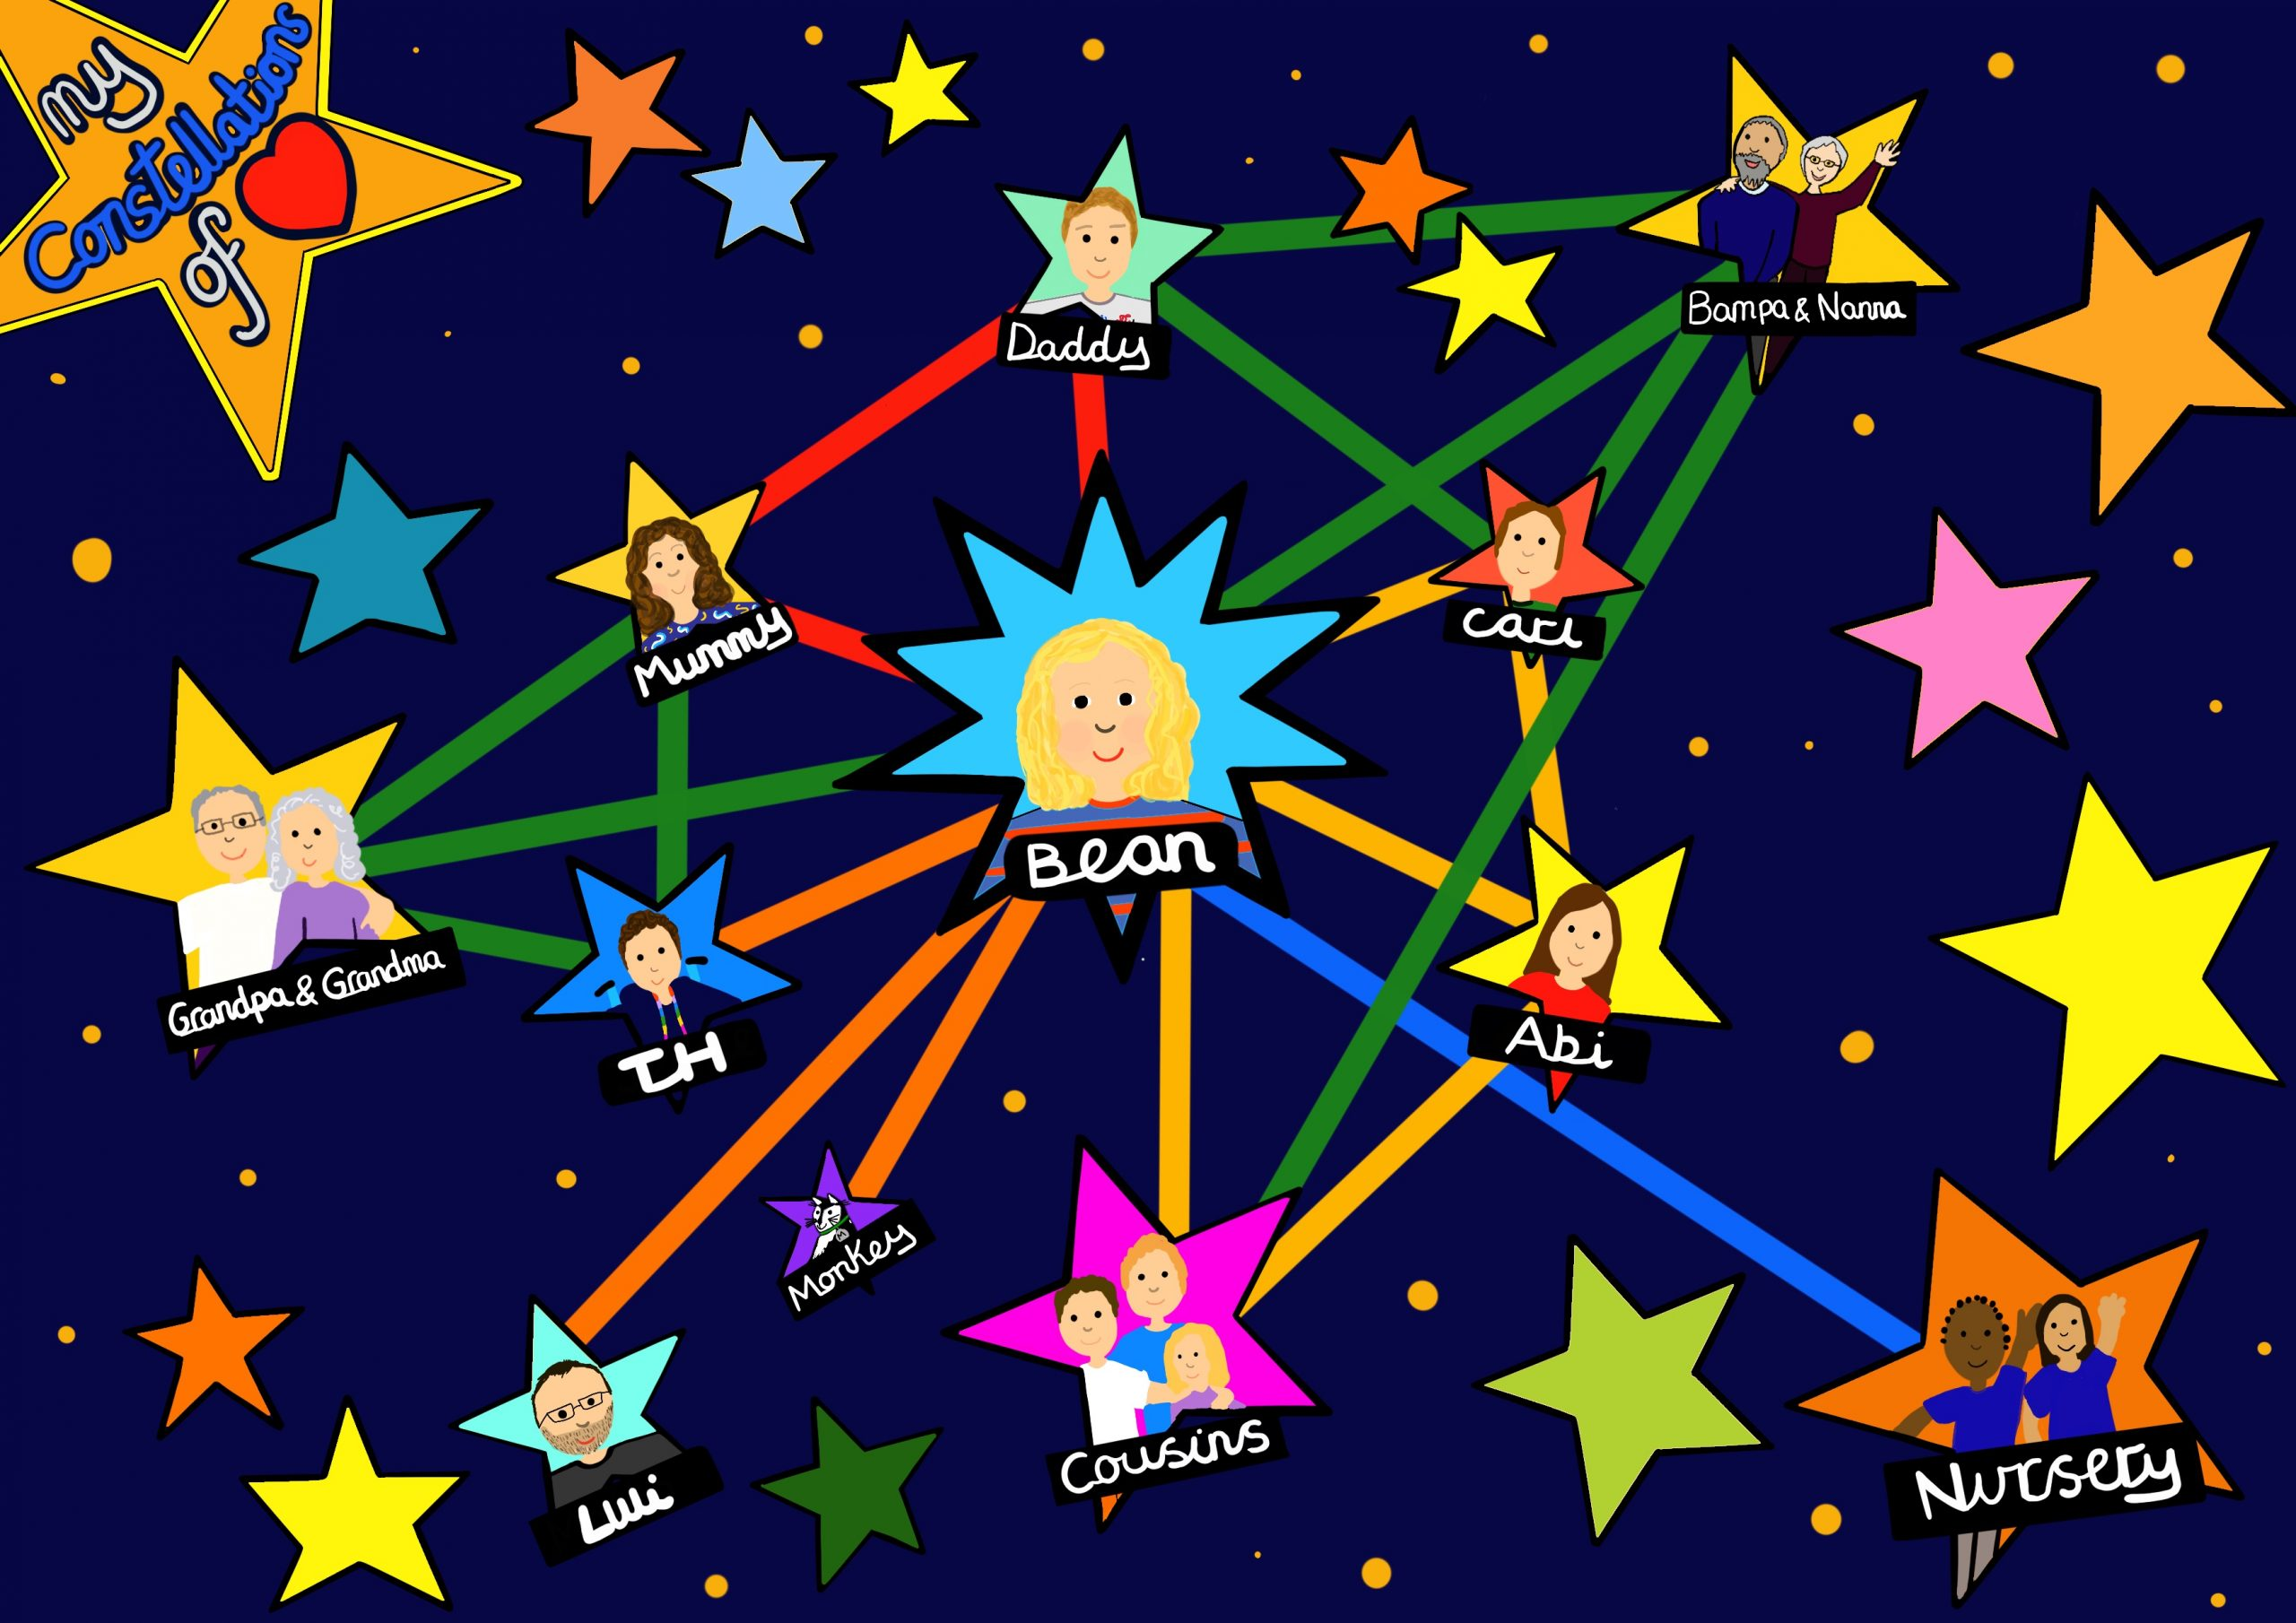 A digital drawing with a dark blue deep space background scattered with colourful stars of different sizes at the centre is a star with a drawing of a small child - Bean and from this are colourful lines connecting to other stars that include Touretteshero, Grandparents and cousins. This drawing is a way of explaining family connections to three-year old Bean.